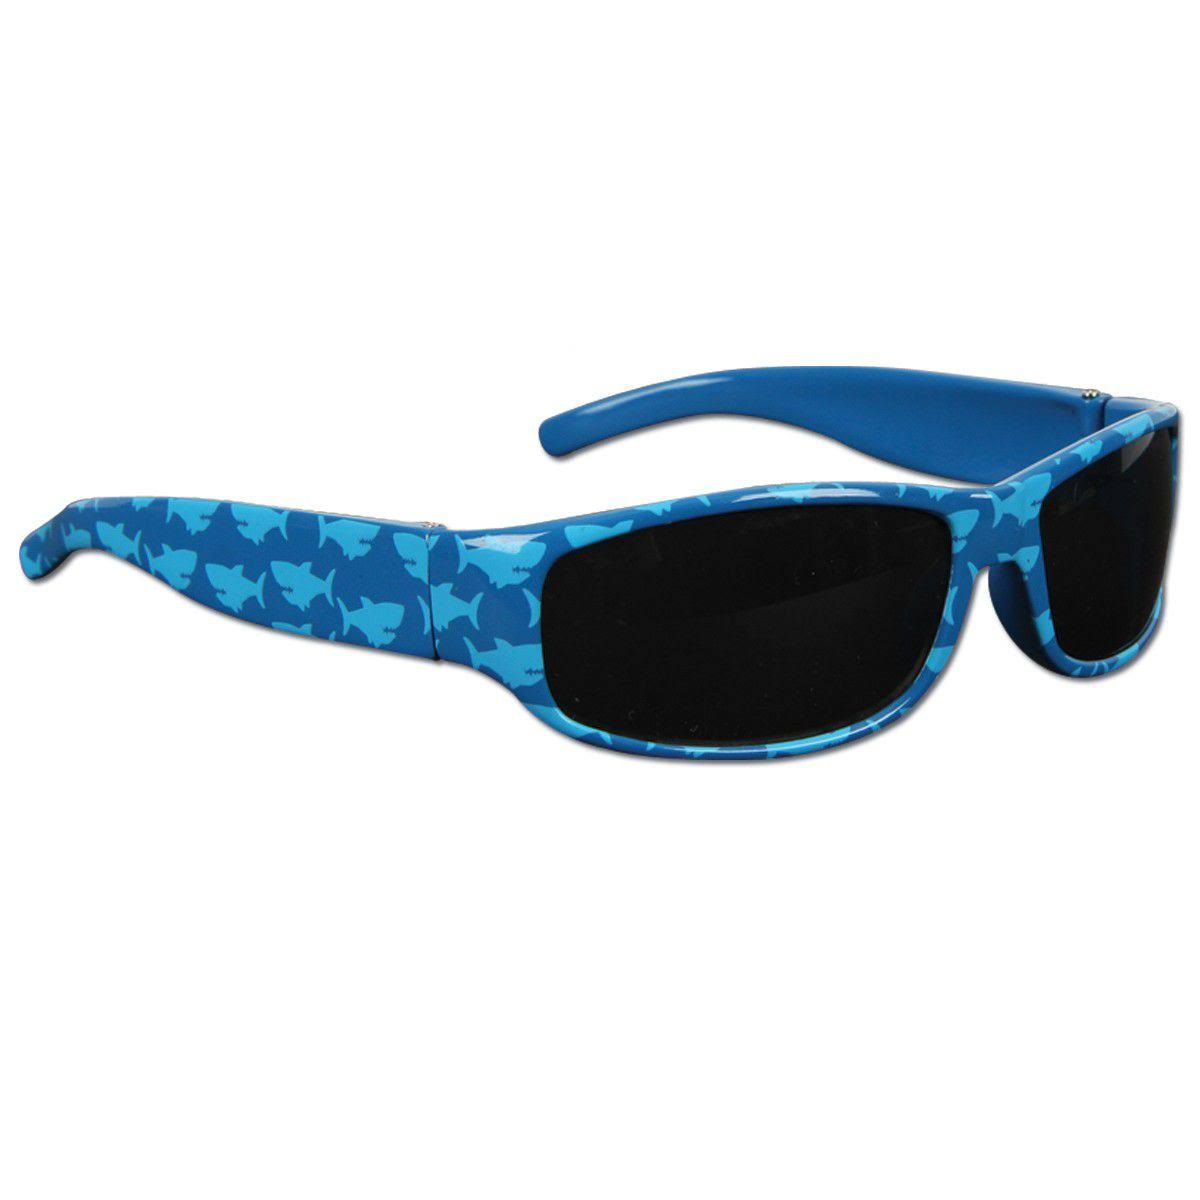 Stephen Joseph Sunglasses - Shark, One Size